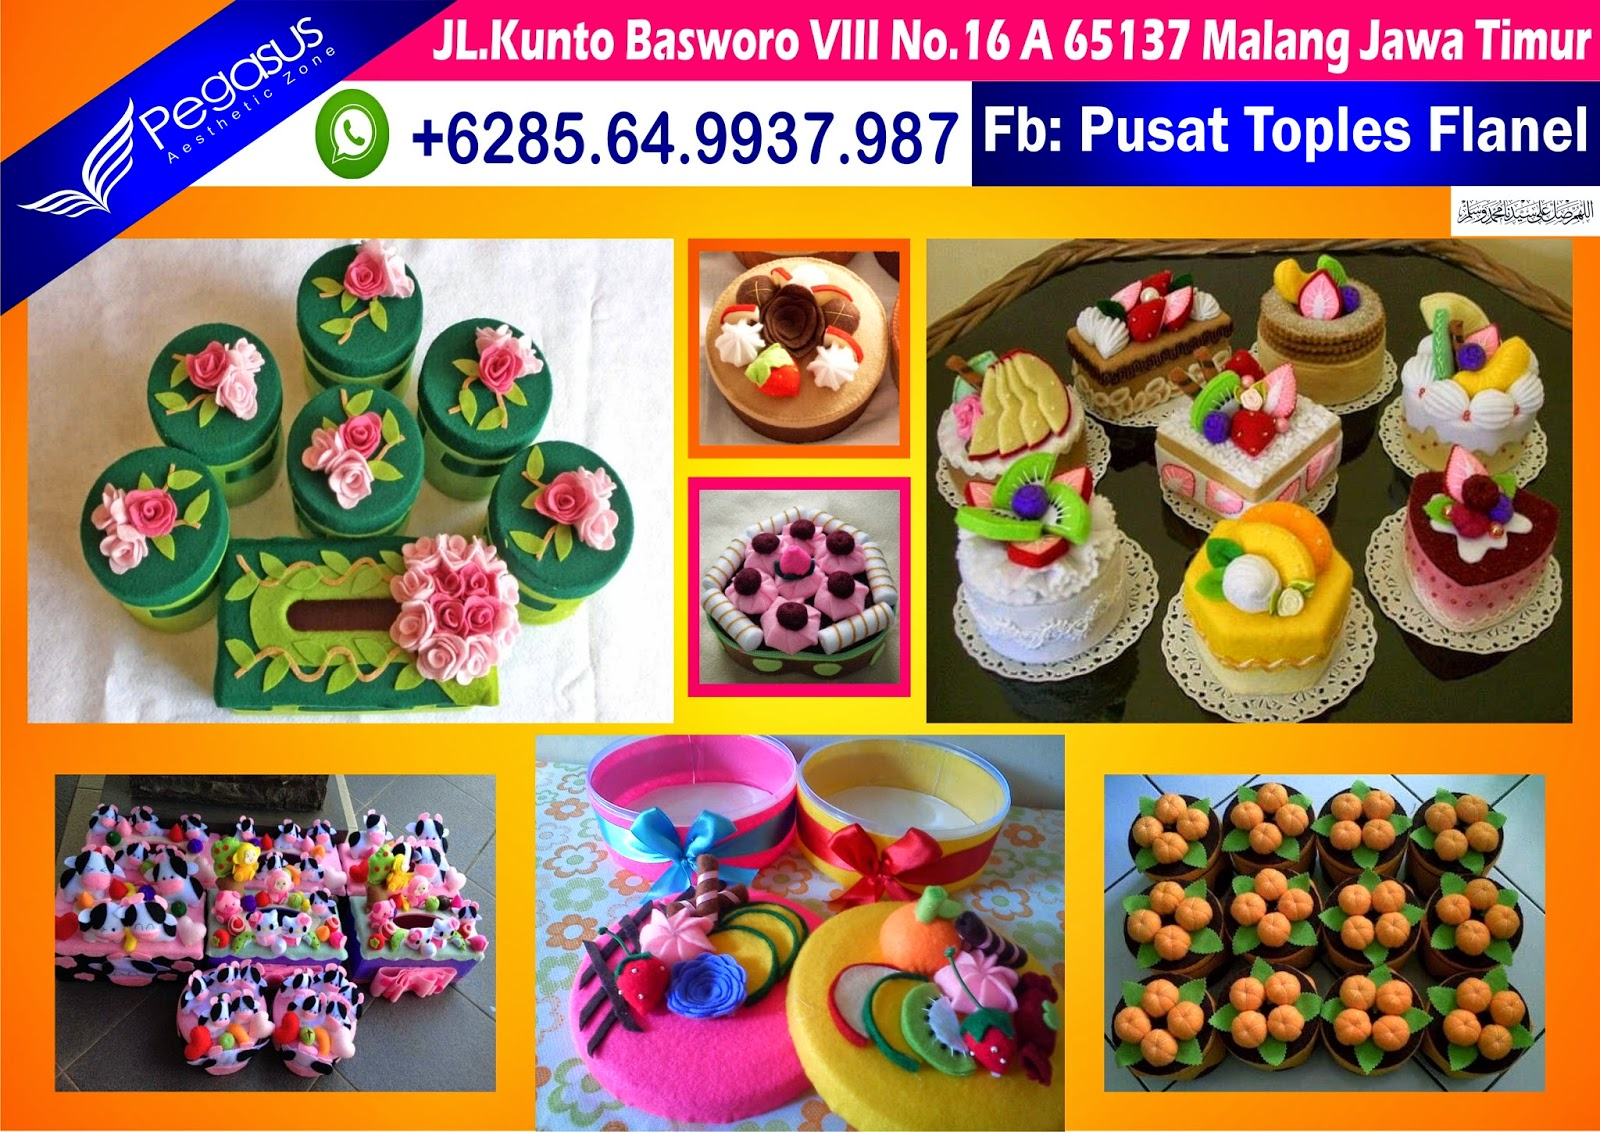 Jual Handicraft Murah, Flannel, Model Toples, +6285.64.993.7987